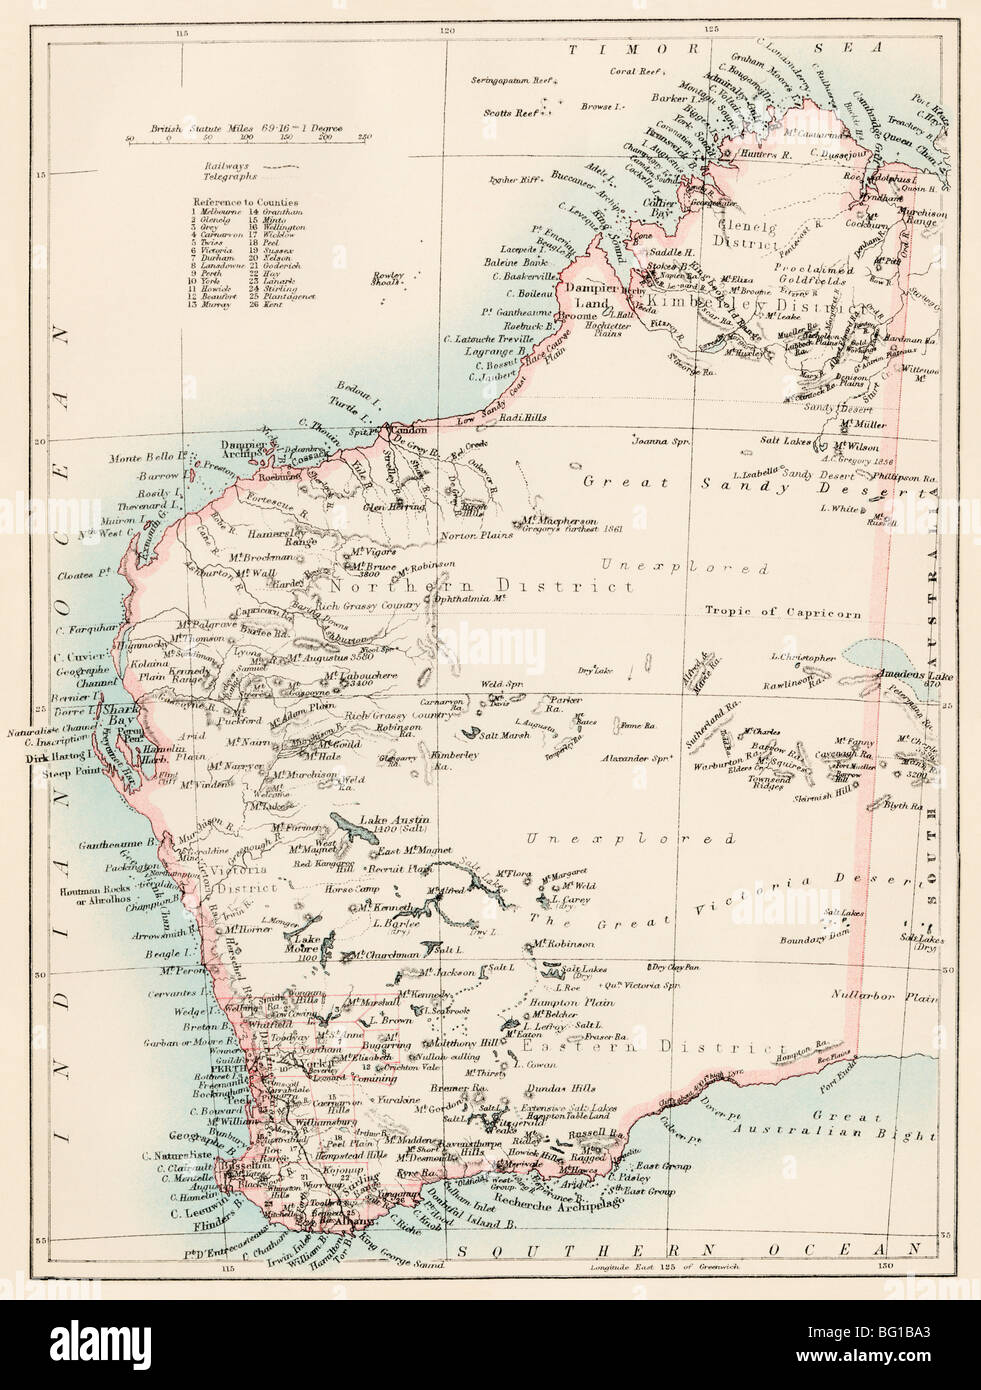 Map of Western Australia, 1870s. Color lithograph - Stock Image